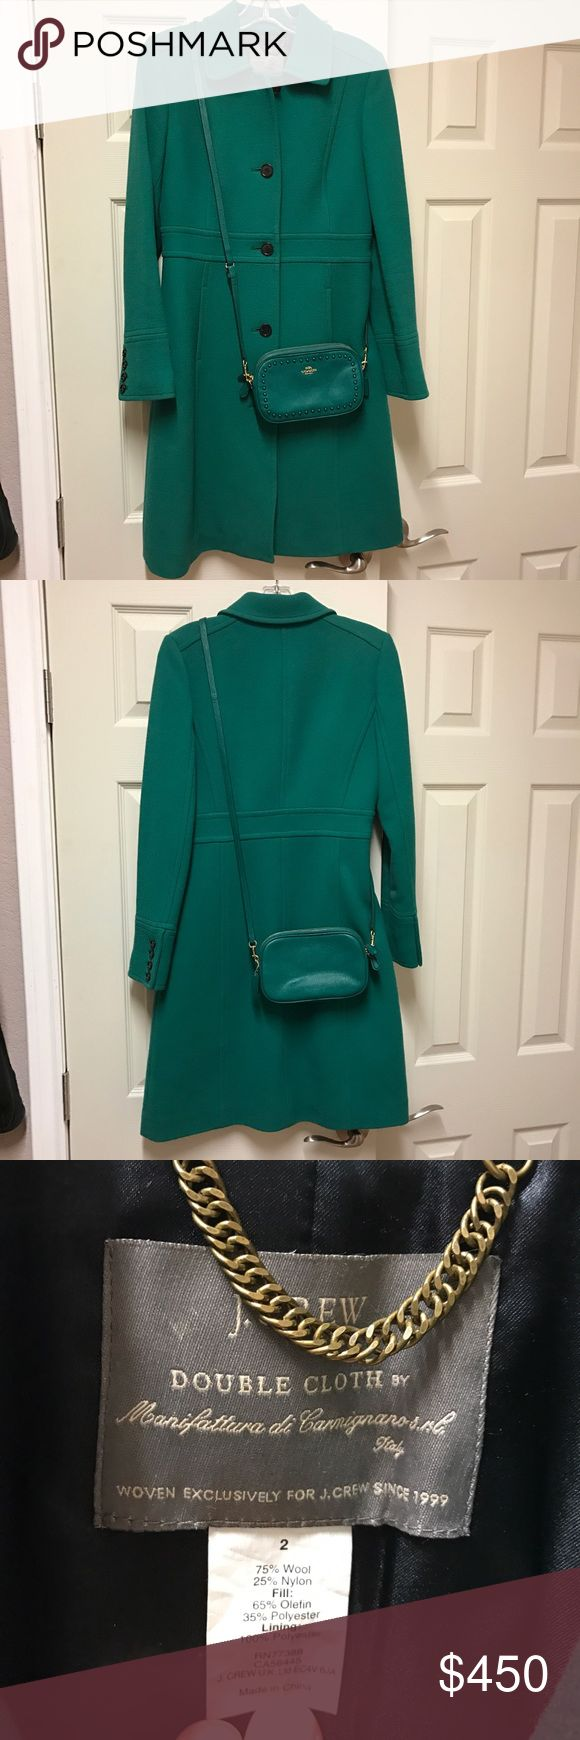 J Crew Double Cloth Lady Coat & Coach Crossbody JCrew Double Cloth Lady Coat in Hunter / Kelly Green in Size 2 with Thinsulate. Excellent Condition - Reposhing because it isn't the right shade of green. I am looking for the bright green called Coastal Green in a 2 or 4. I am selling it with a matching Coach Crossbody Clutch Purse. They are a perfect matching pair! This is the little bit larger crossbody and will hold an iPhone Plus very easily. It is missing the wristlet strap. The purse is…